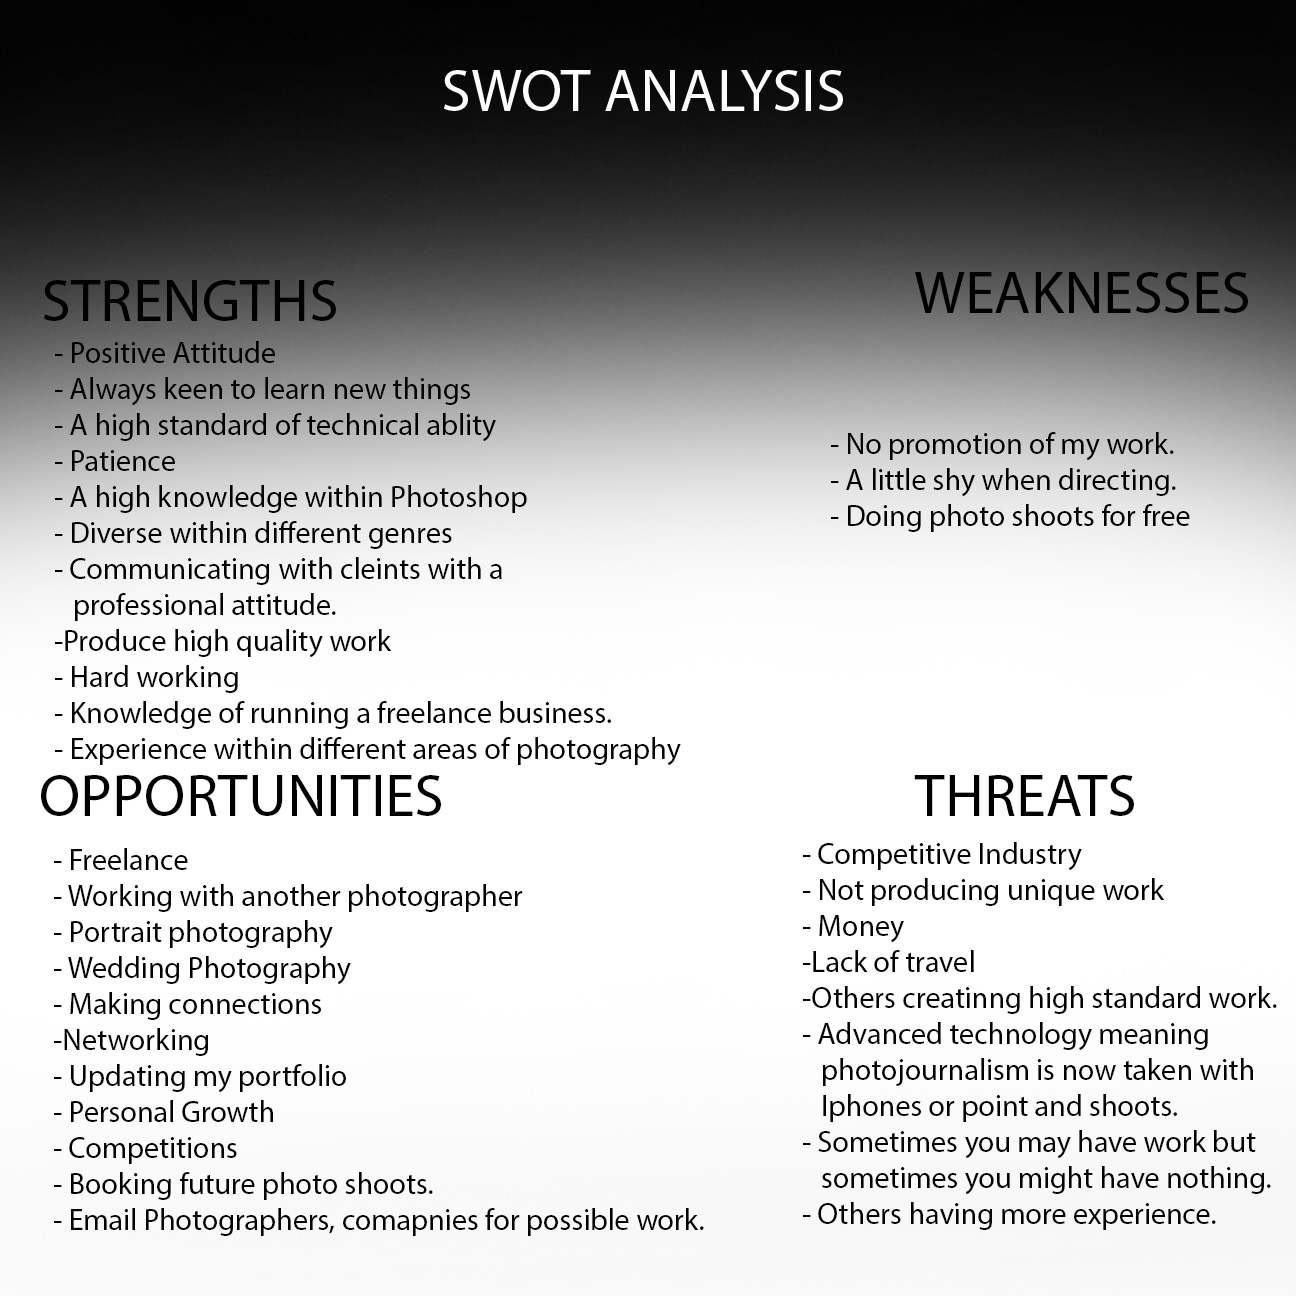 swot analysis for professioanl rugby Do a personal swot analysis to understand your strengths and weaknesses, and the opportunities and threats you face, so you can plan for career success.